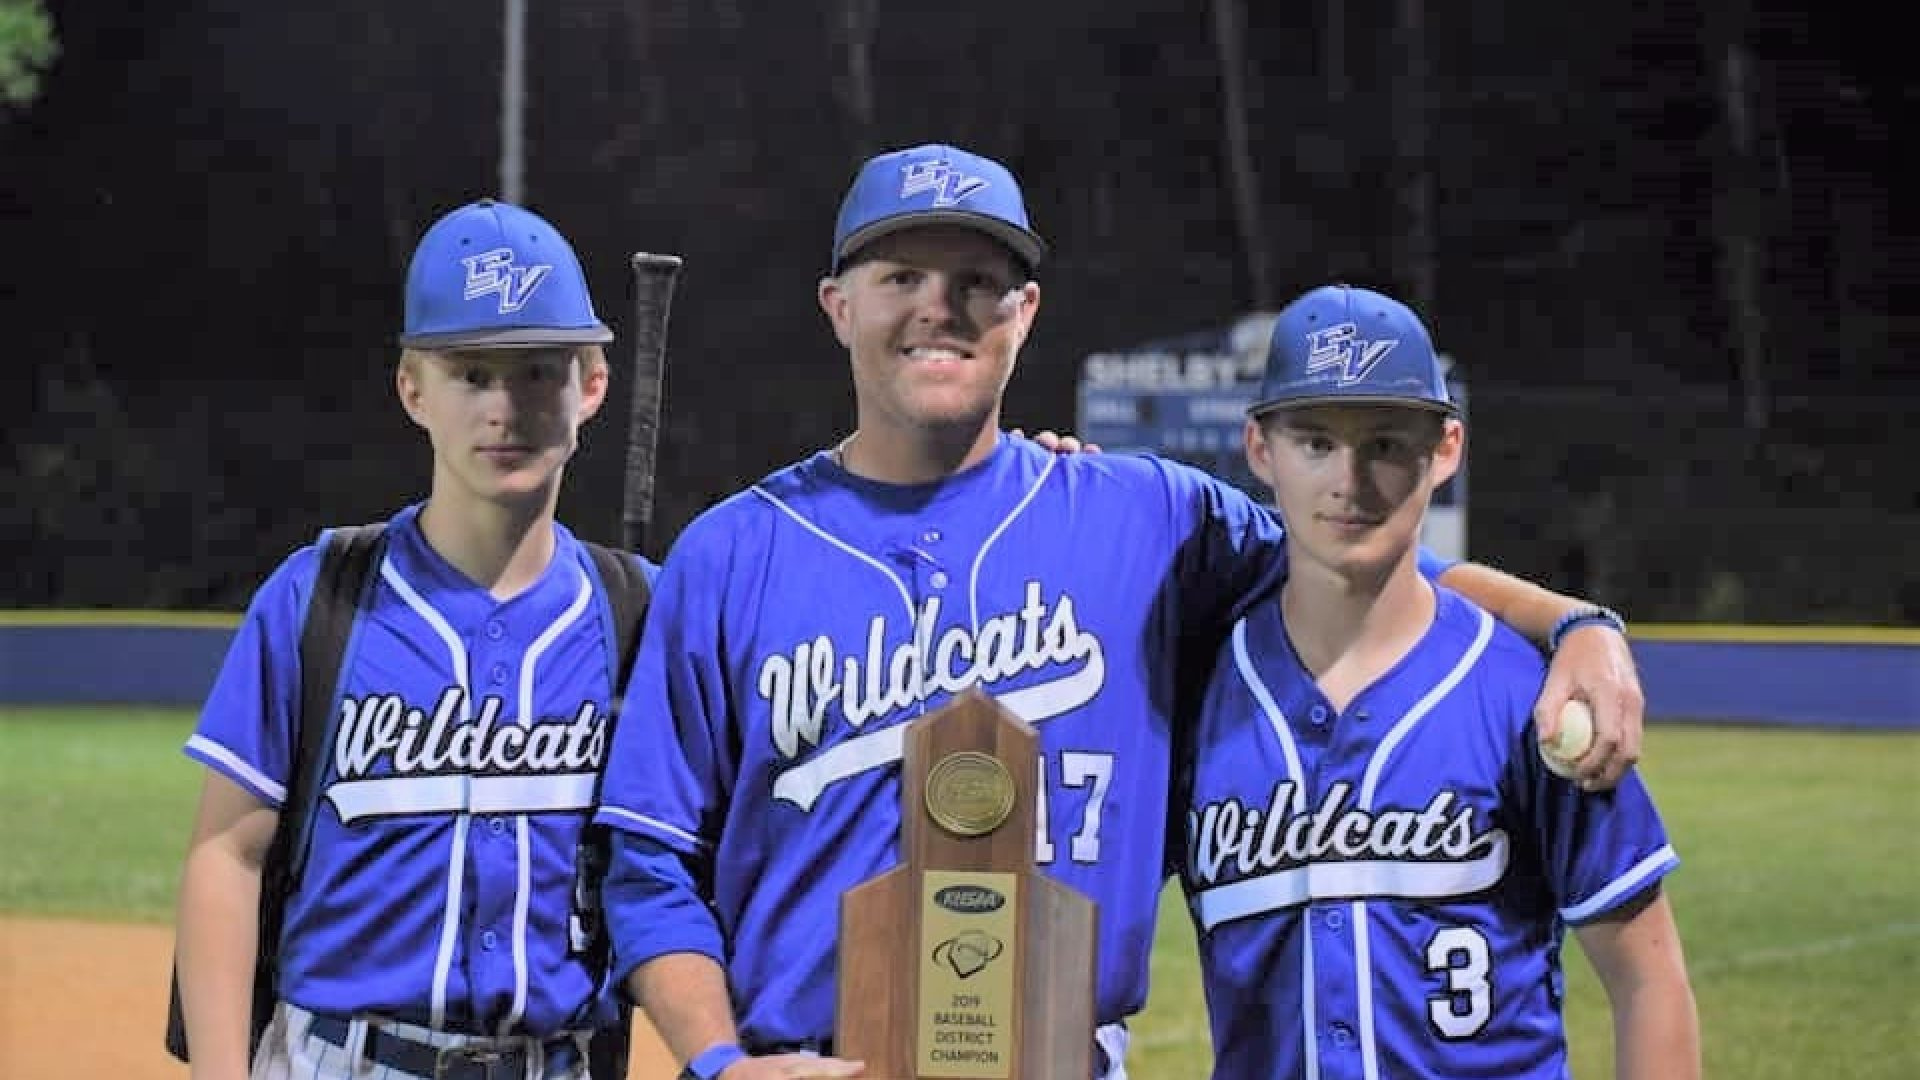 HS BASEBALL NEWS: Shelby Valley coach Compton stepping down